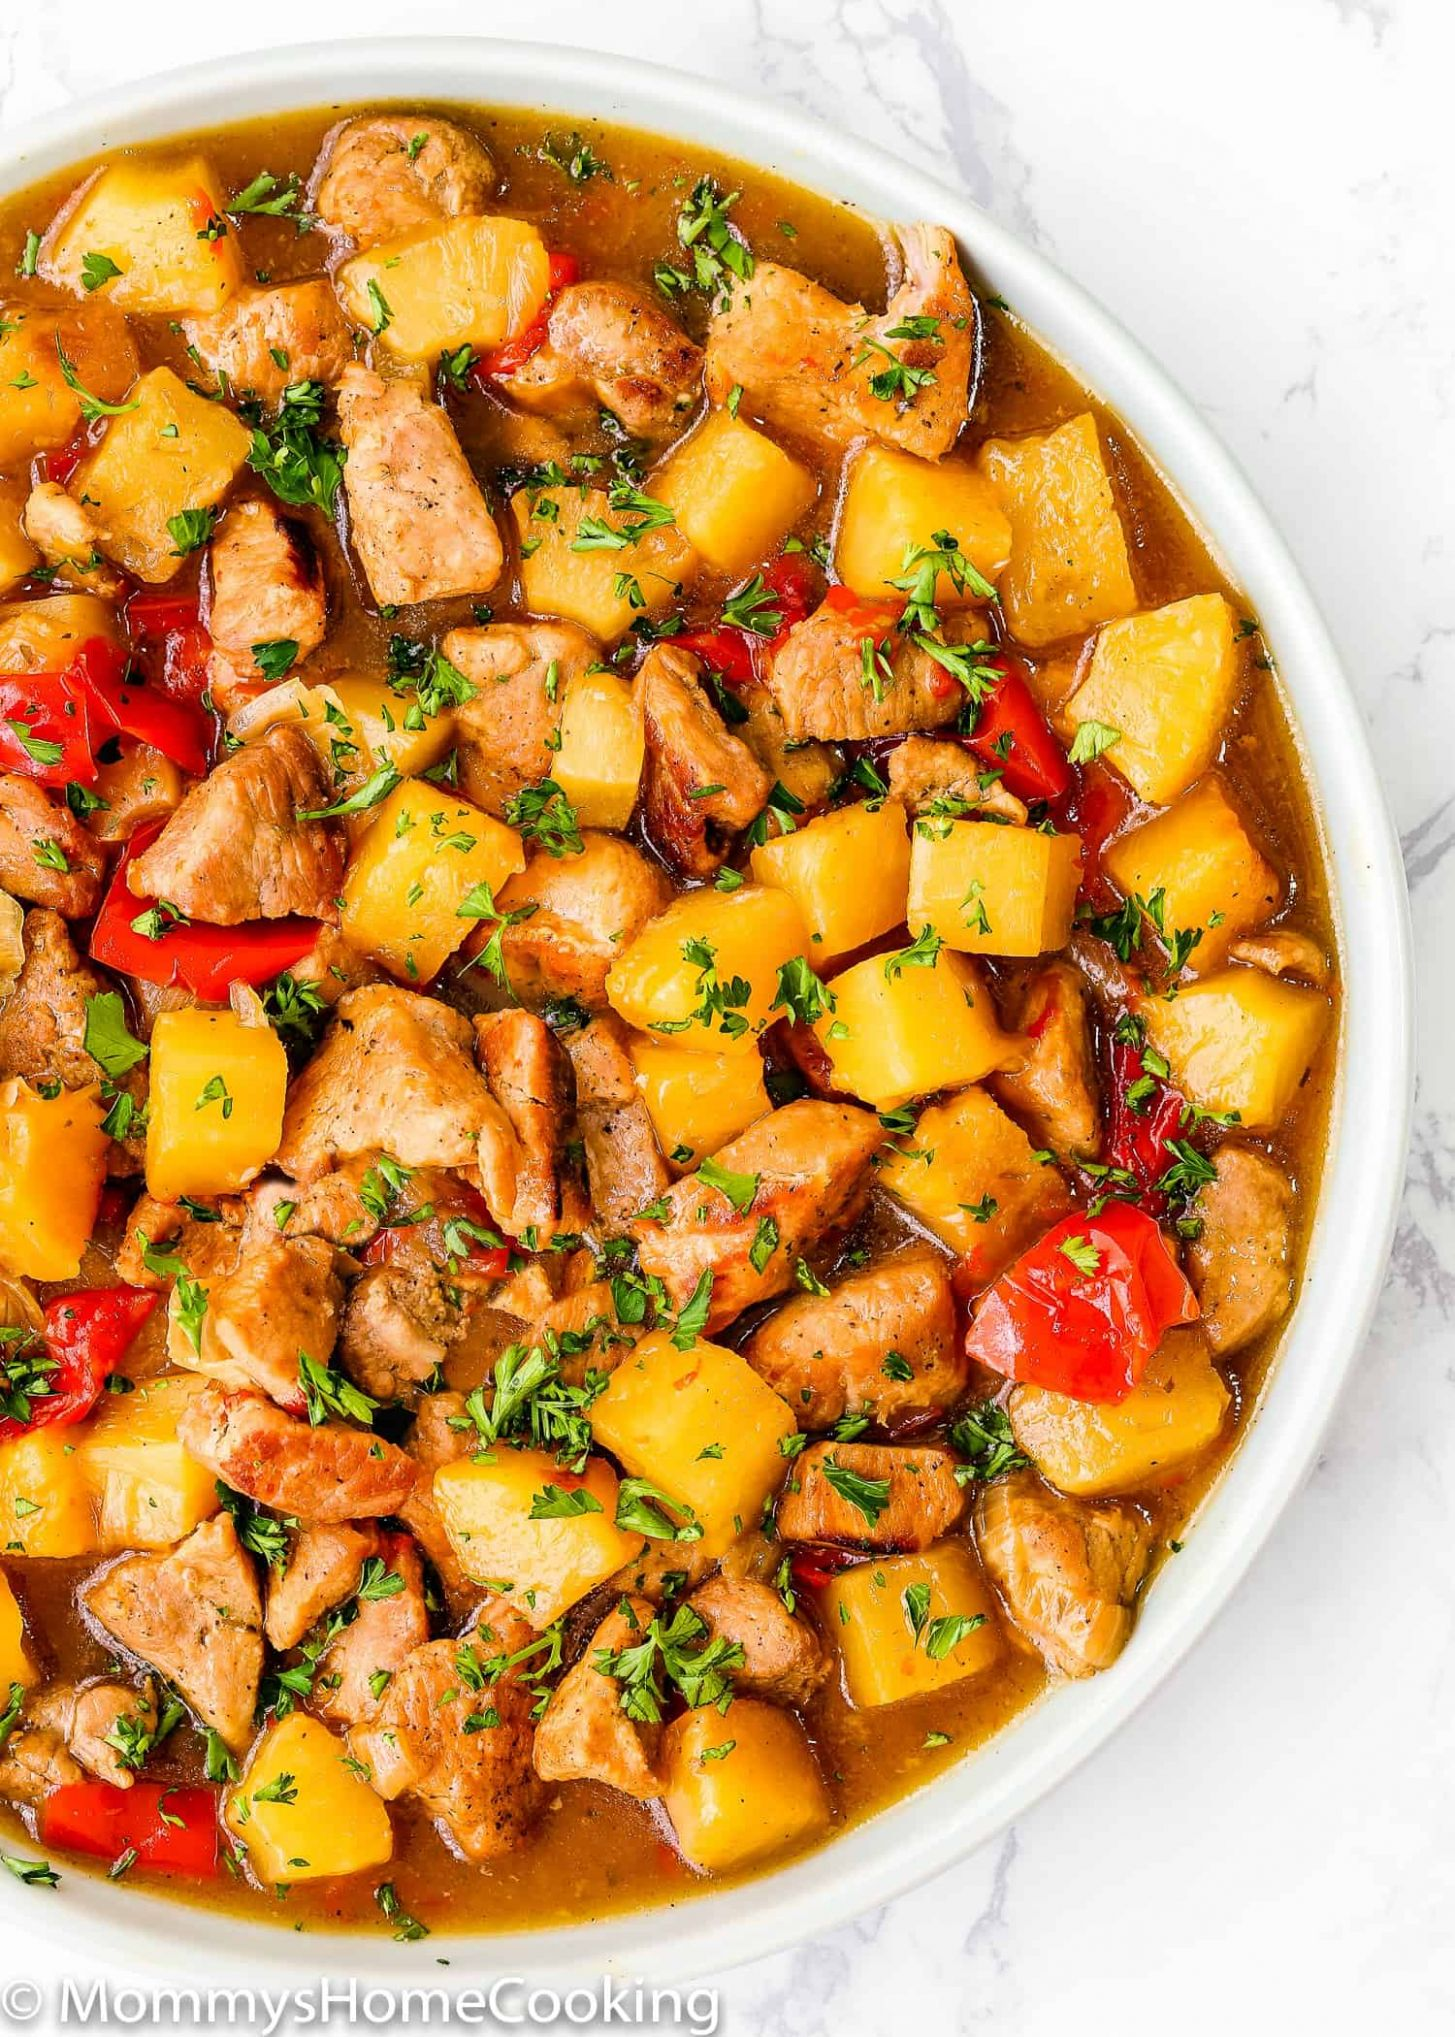 Instant Pot Hawaiian Pineapple Pork - Recipe Pork With Pineapple